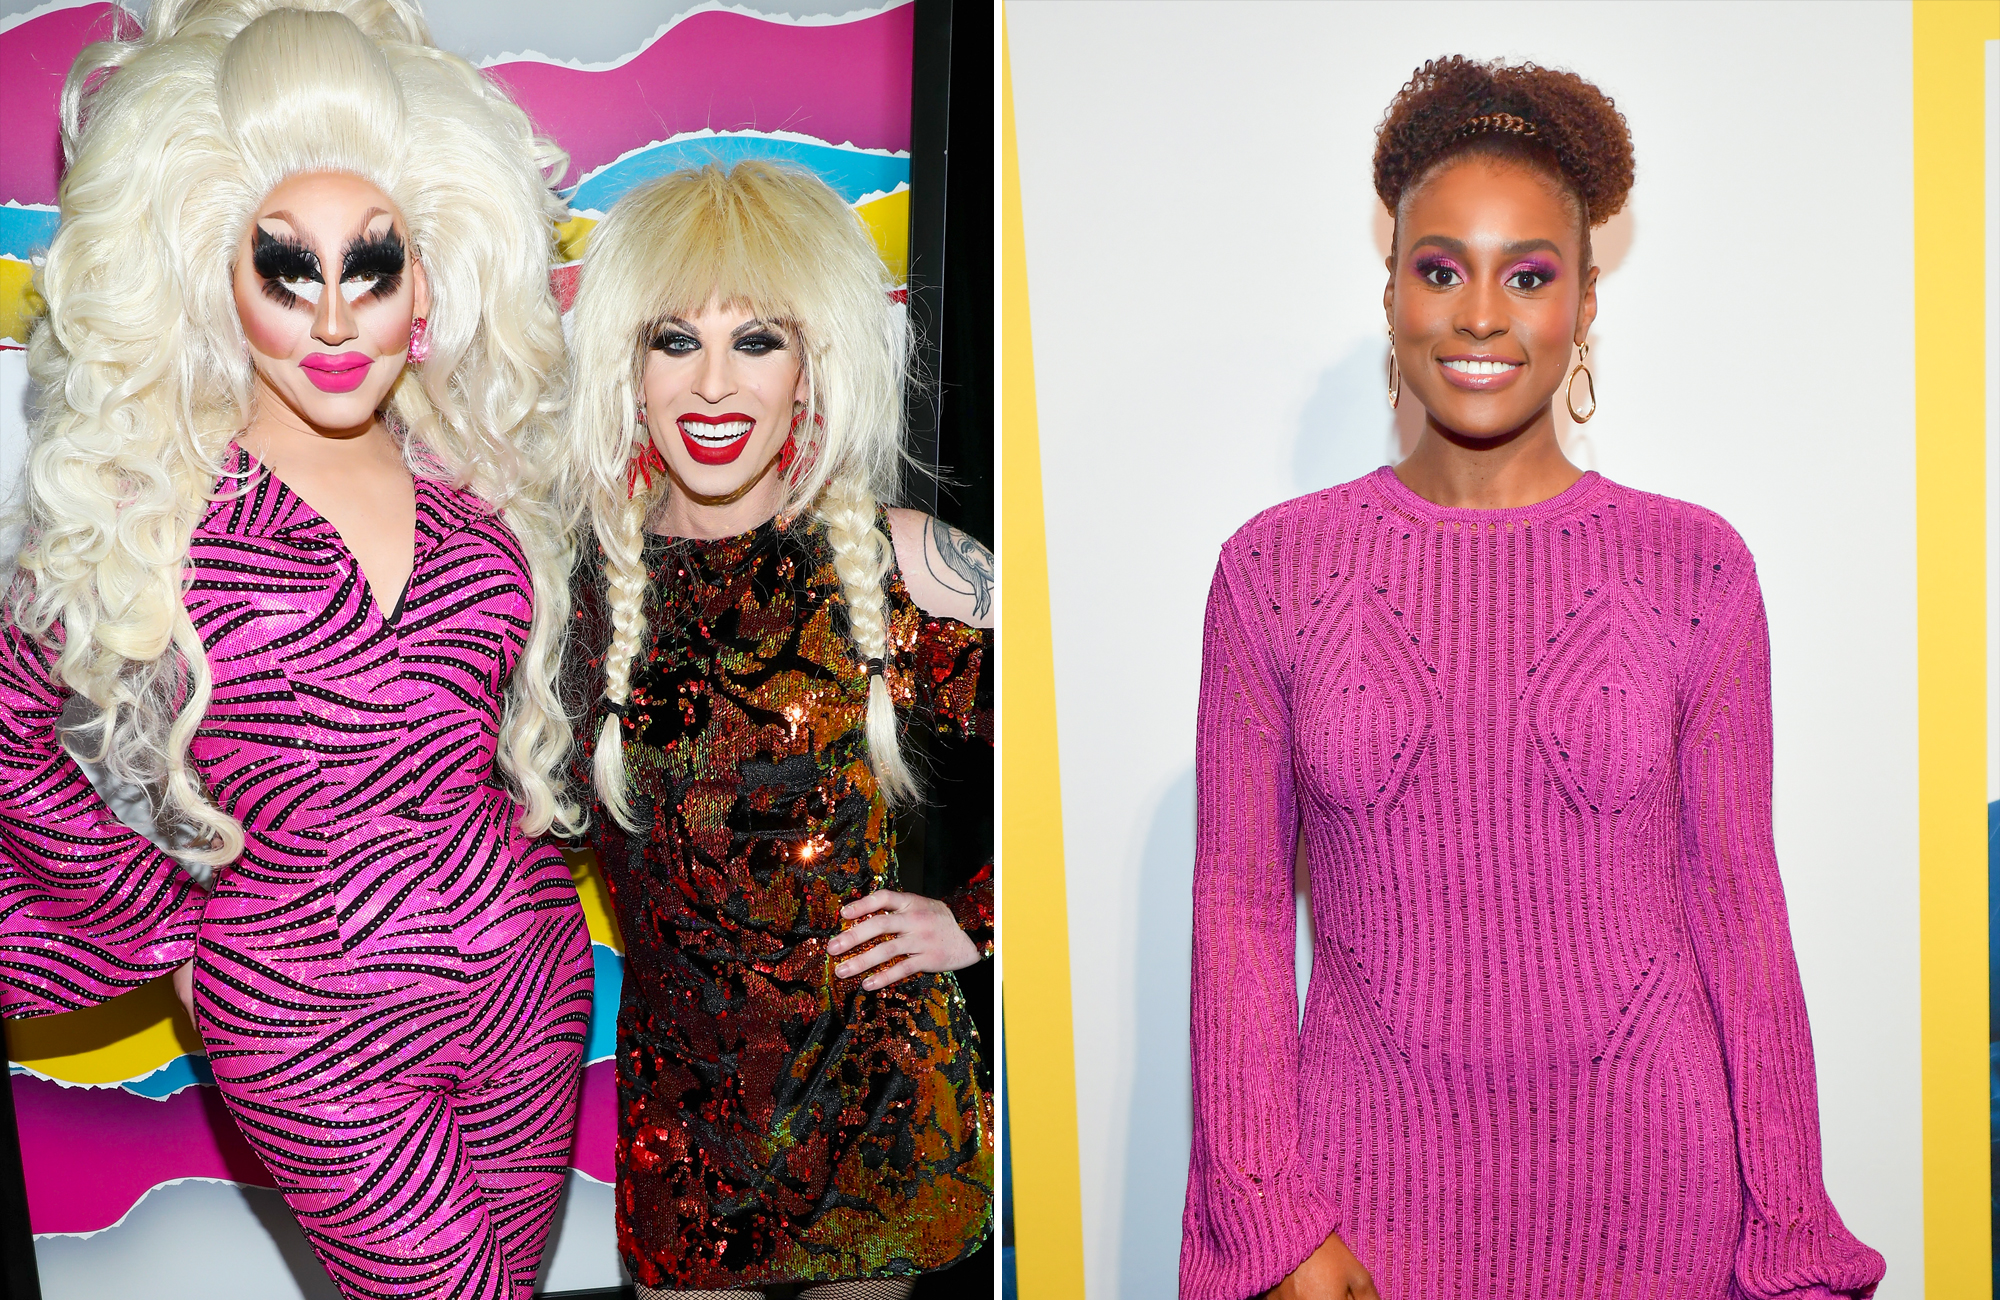 "LEFT: OCTOBER 22: Trixie Mattel (L) and Katya pose backstage during The 8th Annual Streamy Awards at The Beverly Hilton Hotel on October 22, 2018 in Beverly Hills, California. (Photo by Rich Polk/Getty Images for Streamy Awards) RIGHT: APRIL 04: Issa Rae attends ""Little"" Atlanta Premiere at Regal Atlantic Station on April 4, 2019 in Atlanta, Georgia.(Photo by Prince Williams/Wireimage)"